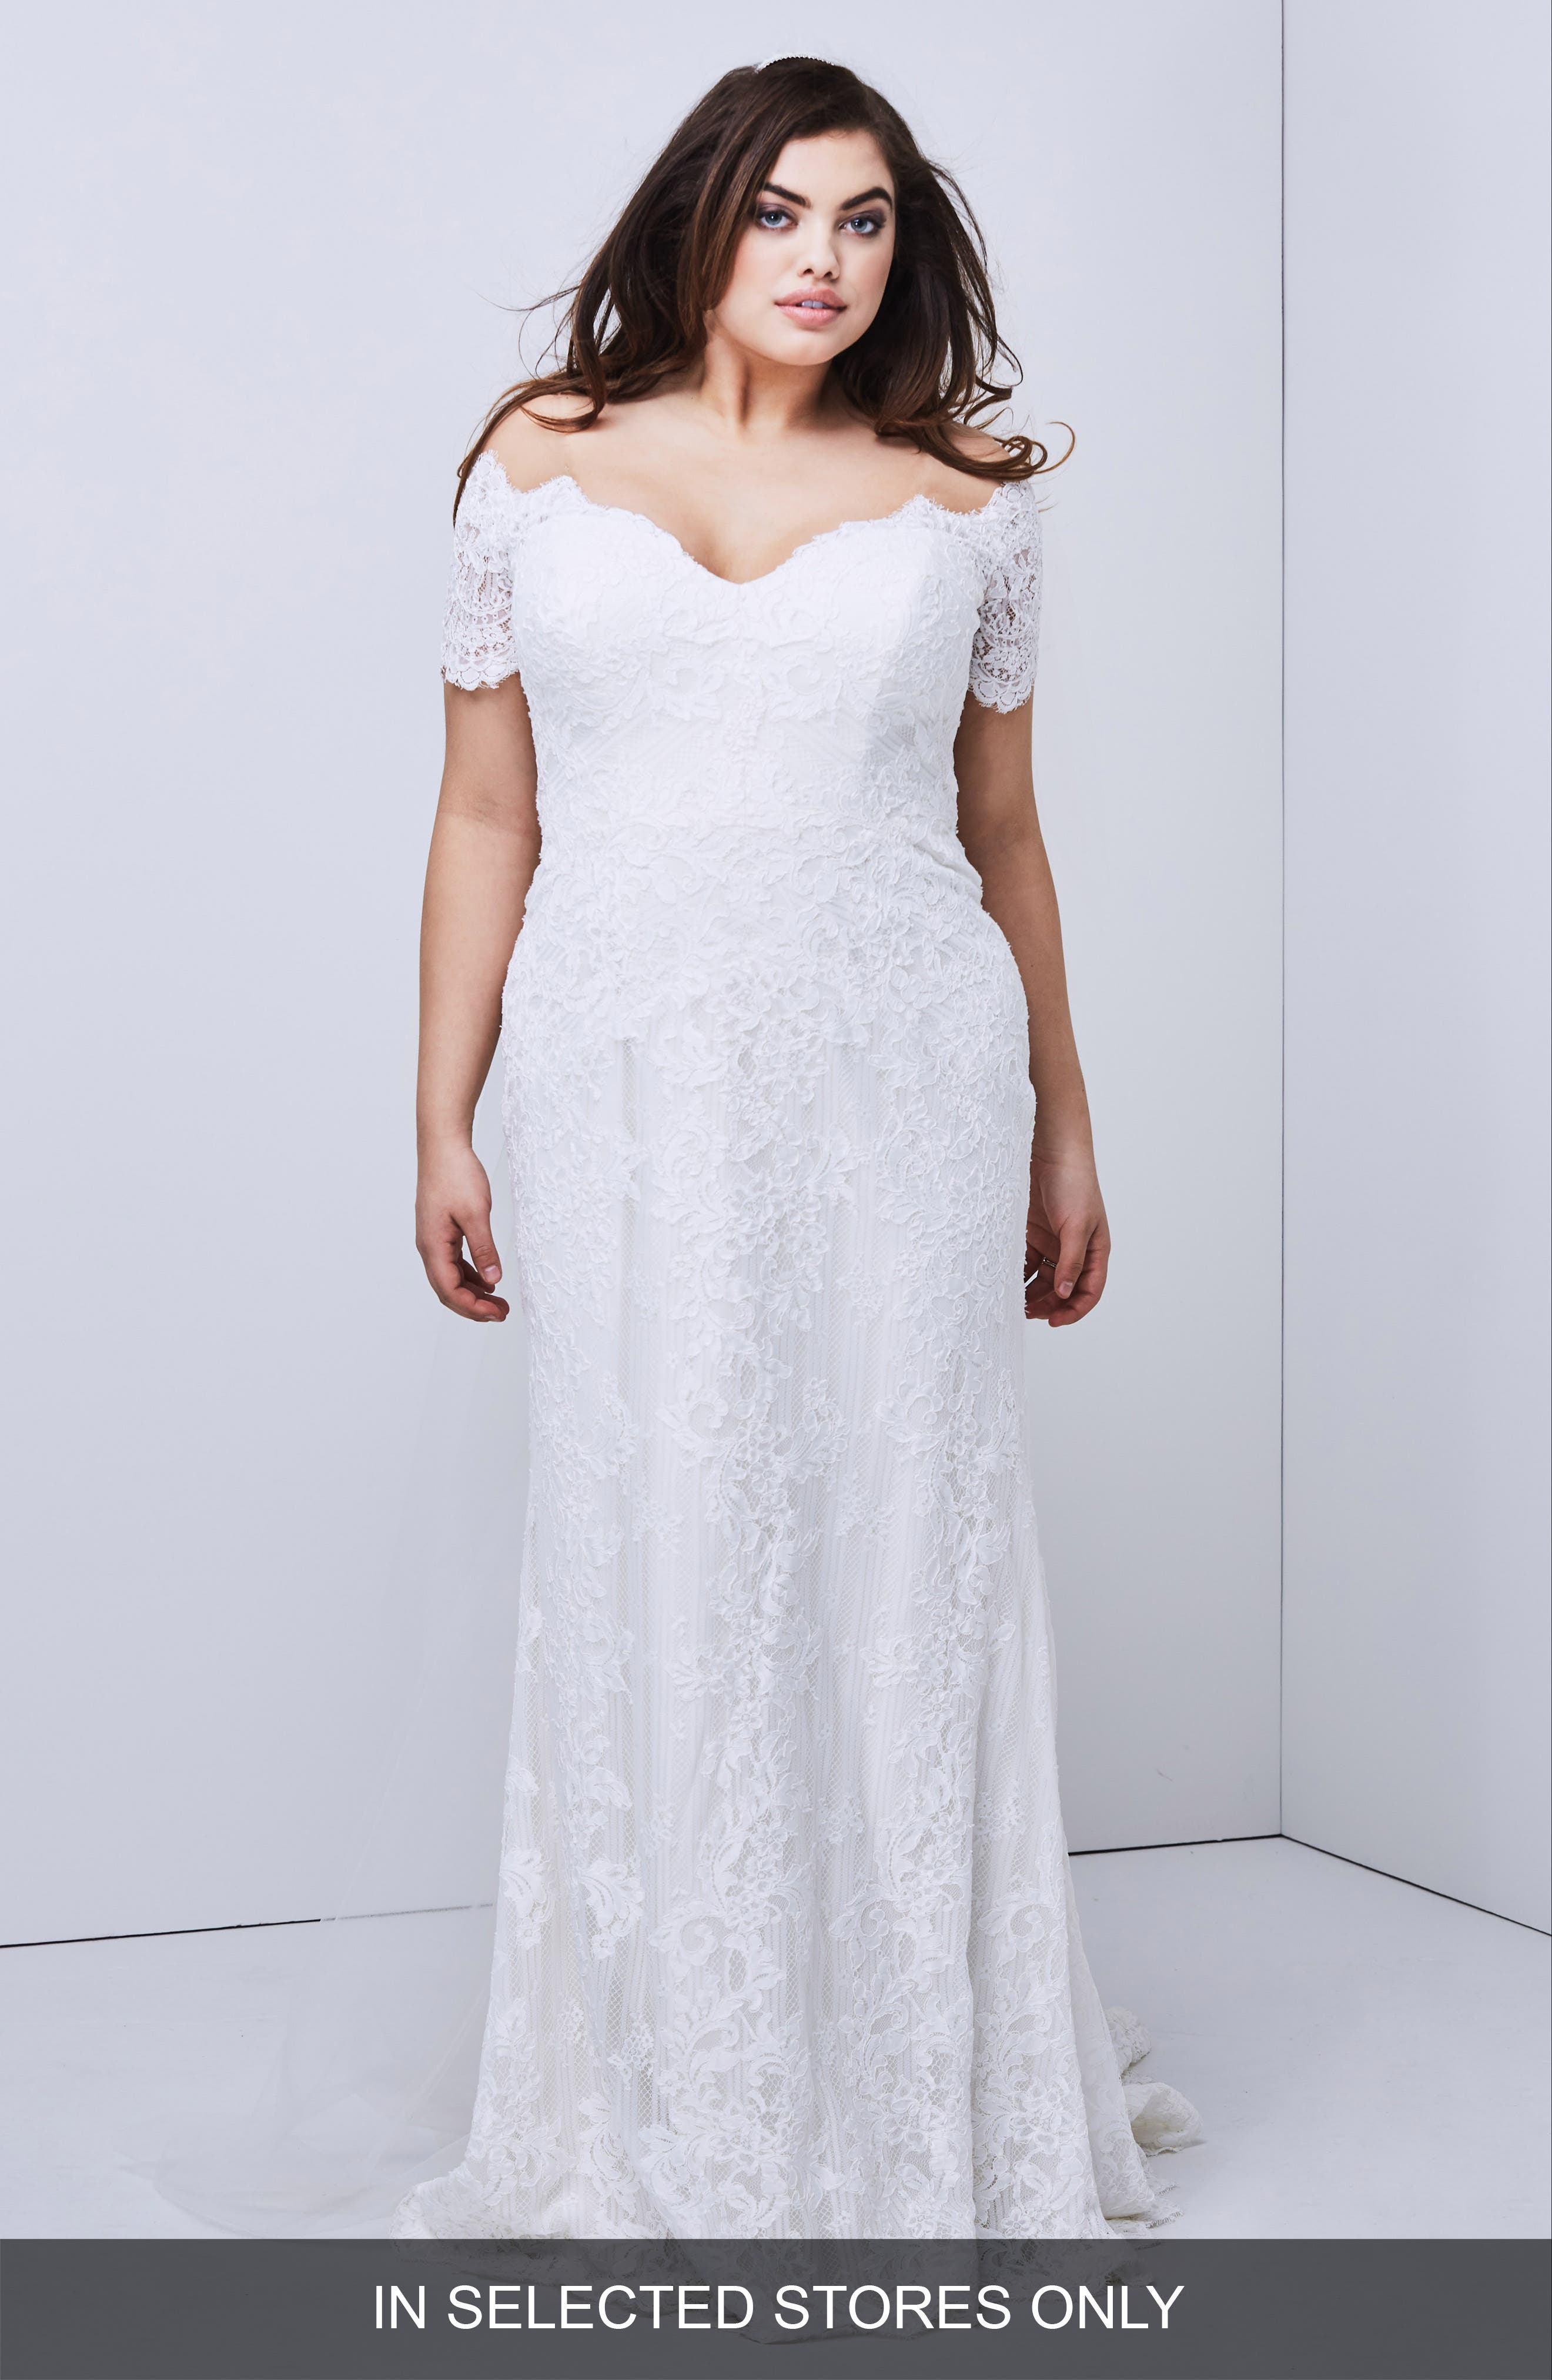 ab585b6eeed Off The Shoulder Wedding Dresses   Bridal Gowns